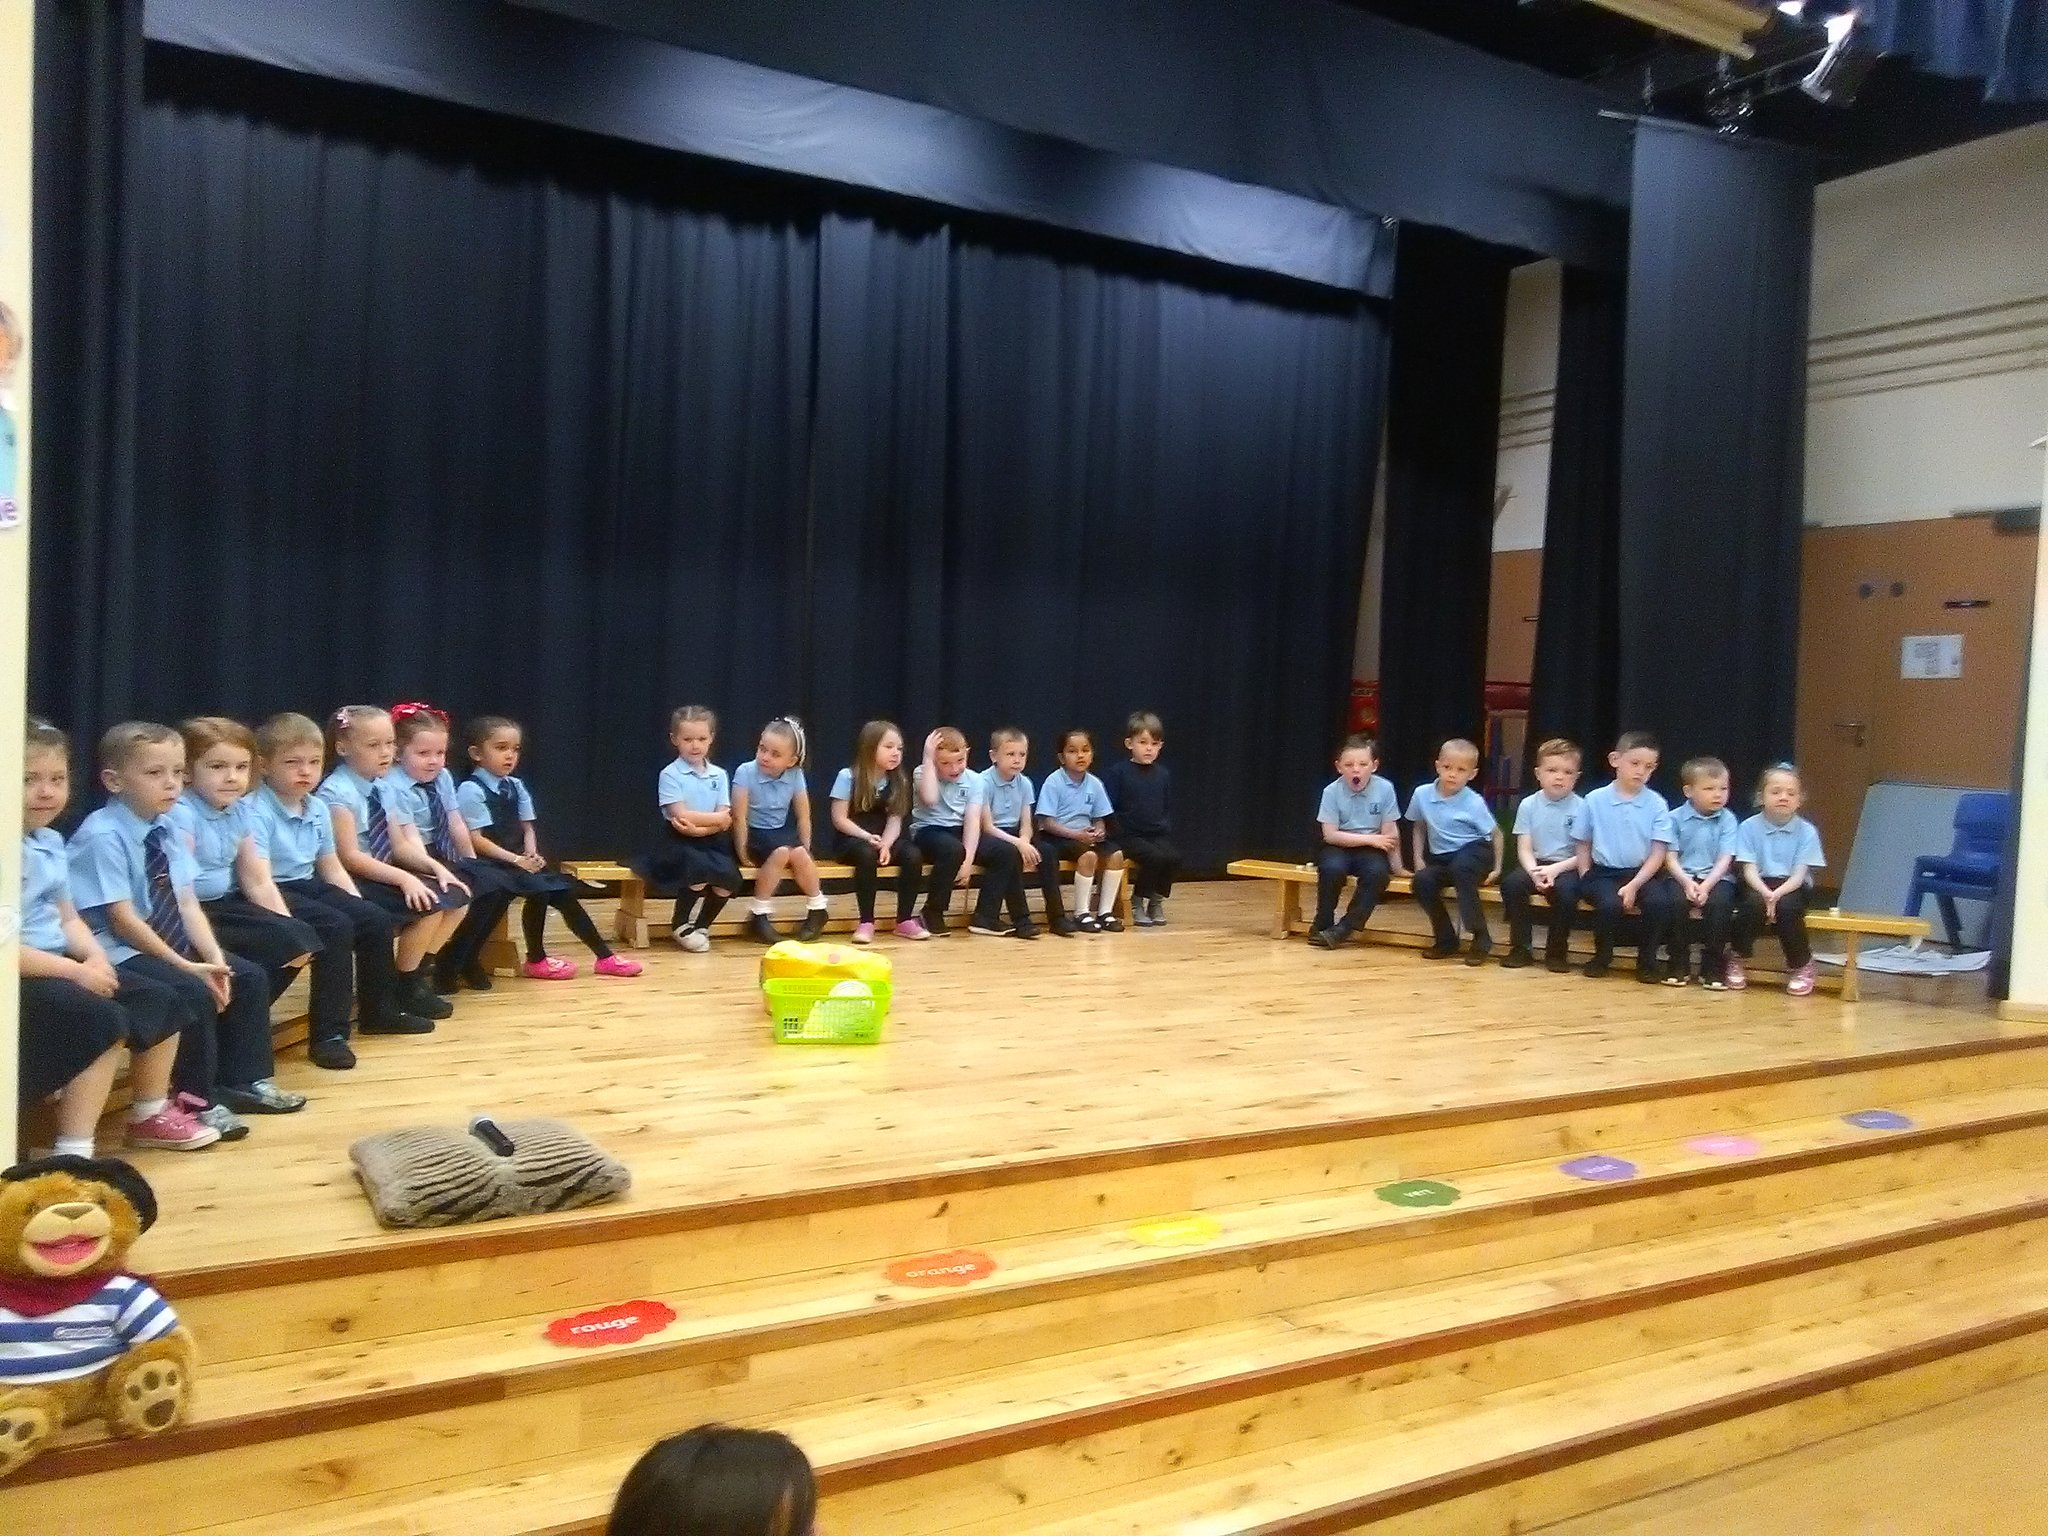 P1/2 assembly is underway sharing the learning with family and friends #confidentindividuals #effectivecontributors https://t.co/5X8BmmofMt